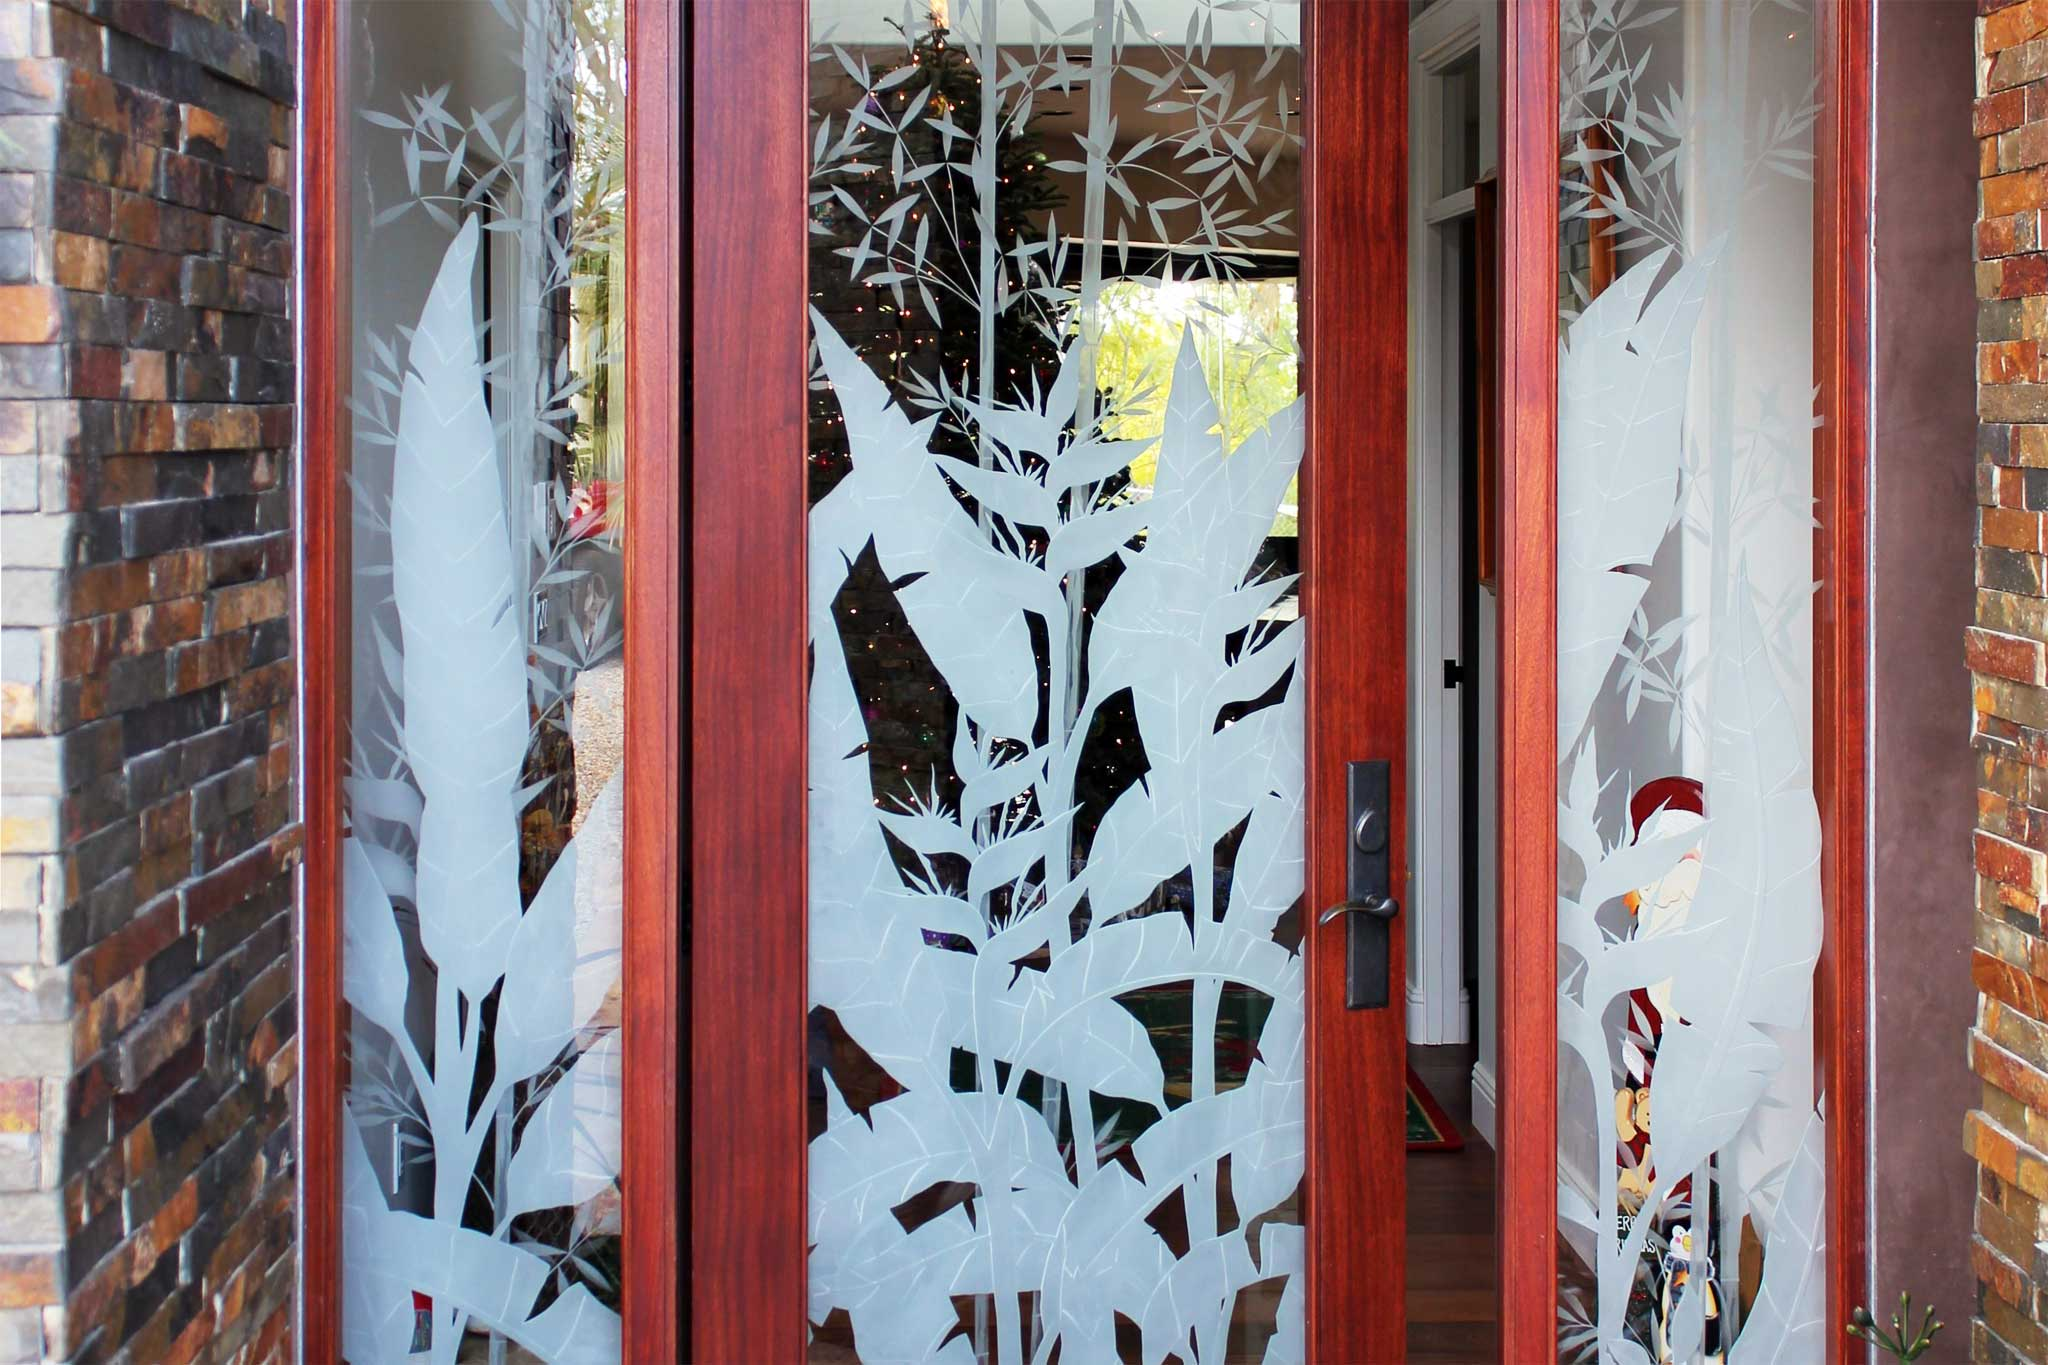 Sandblasted and Etched Glass Designs for Doors, Windows, Signage, Room Dividers, and More